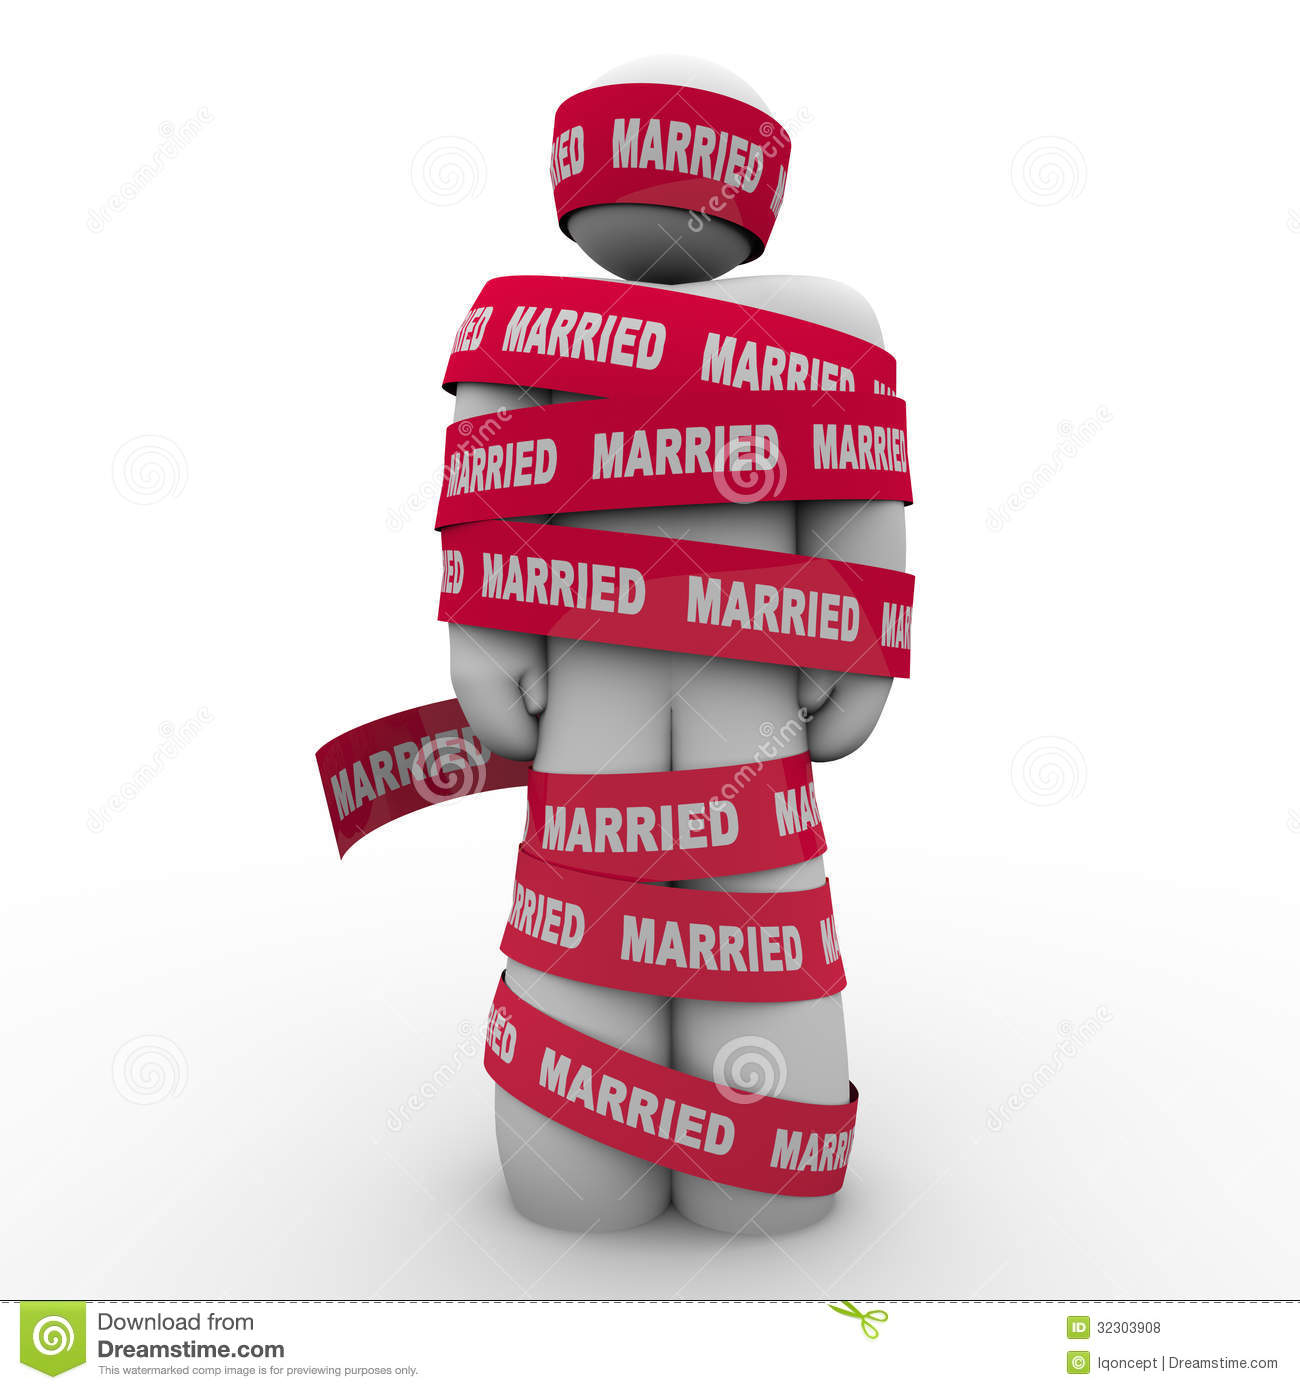 Married Man Wrapped Red Tape Prisoner Trapped PersonUnhappy Married Man